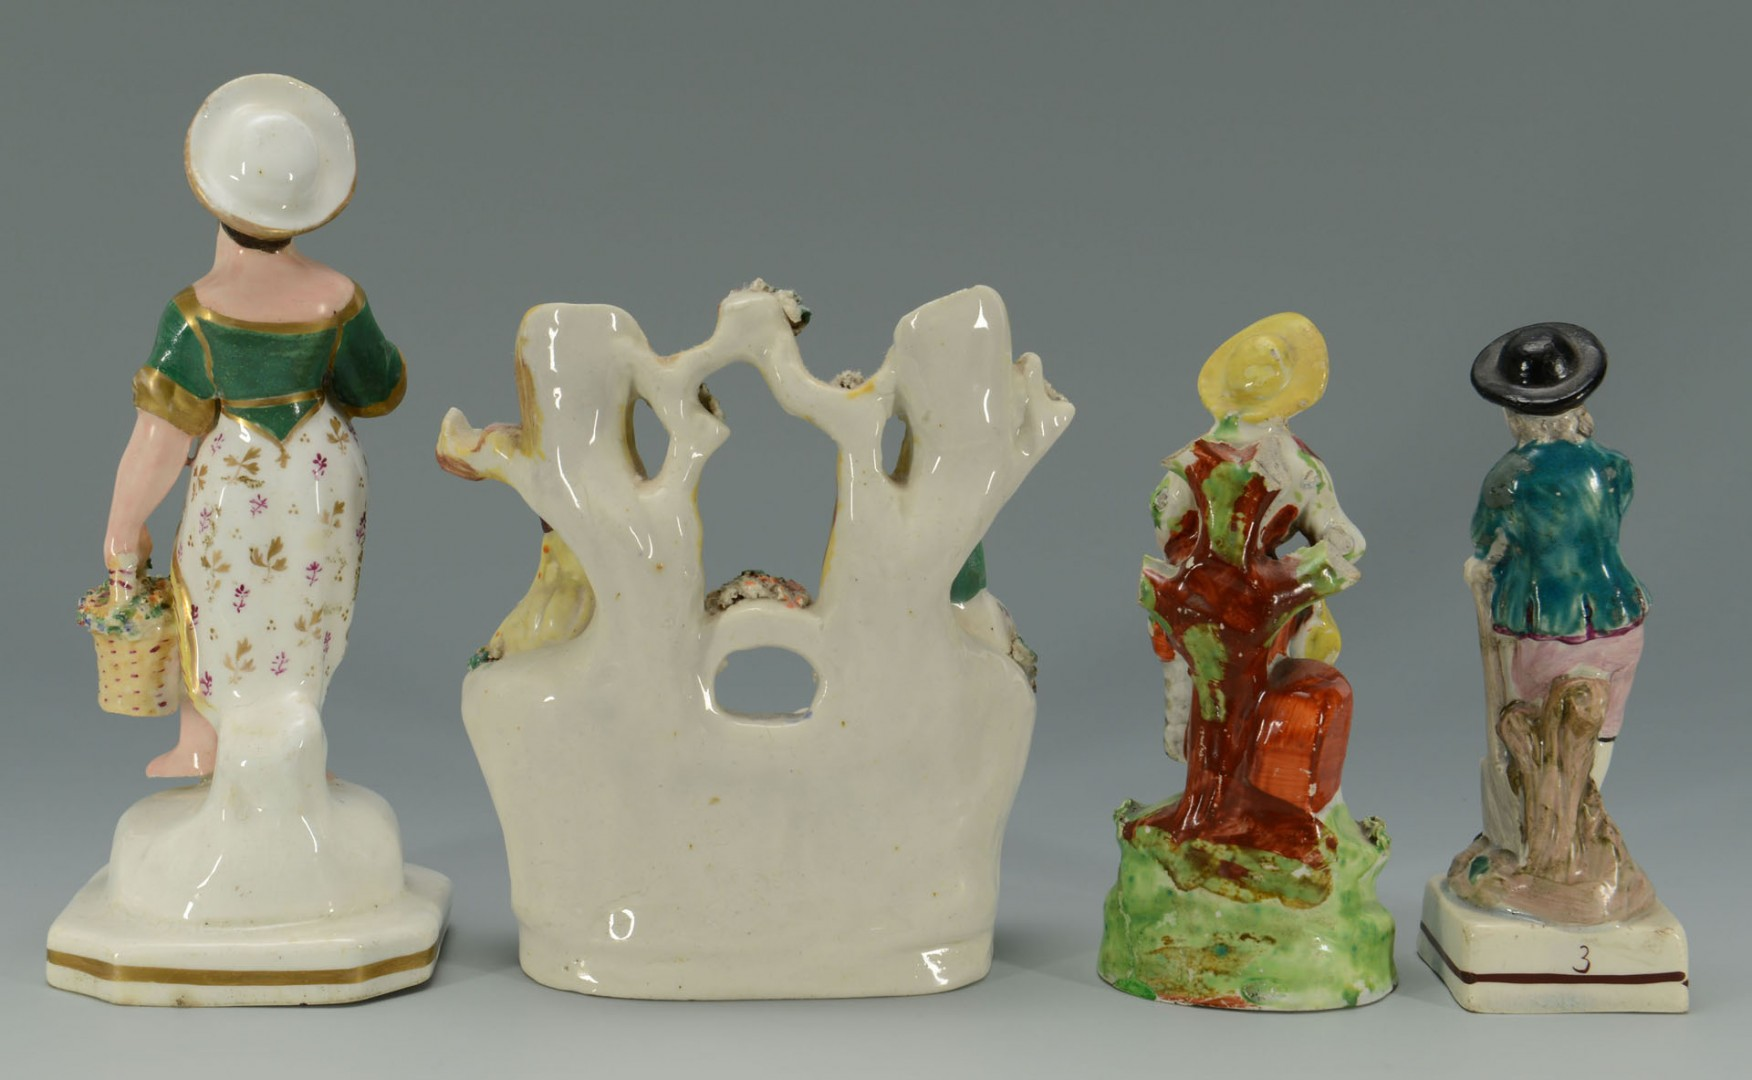 Lot 434: Grouping of 4 Staffordshire Figures